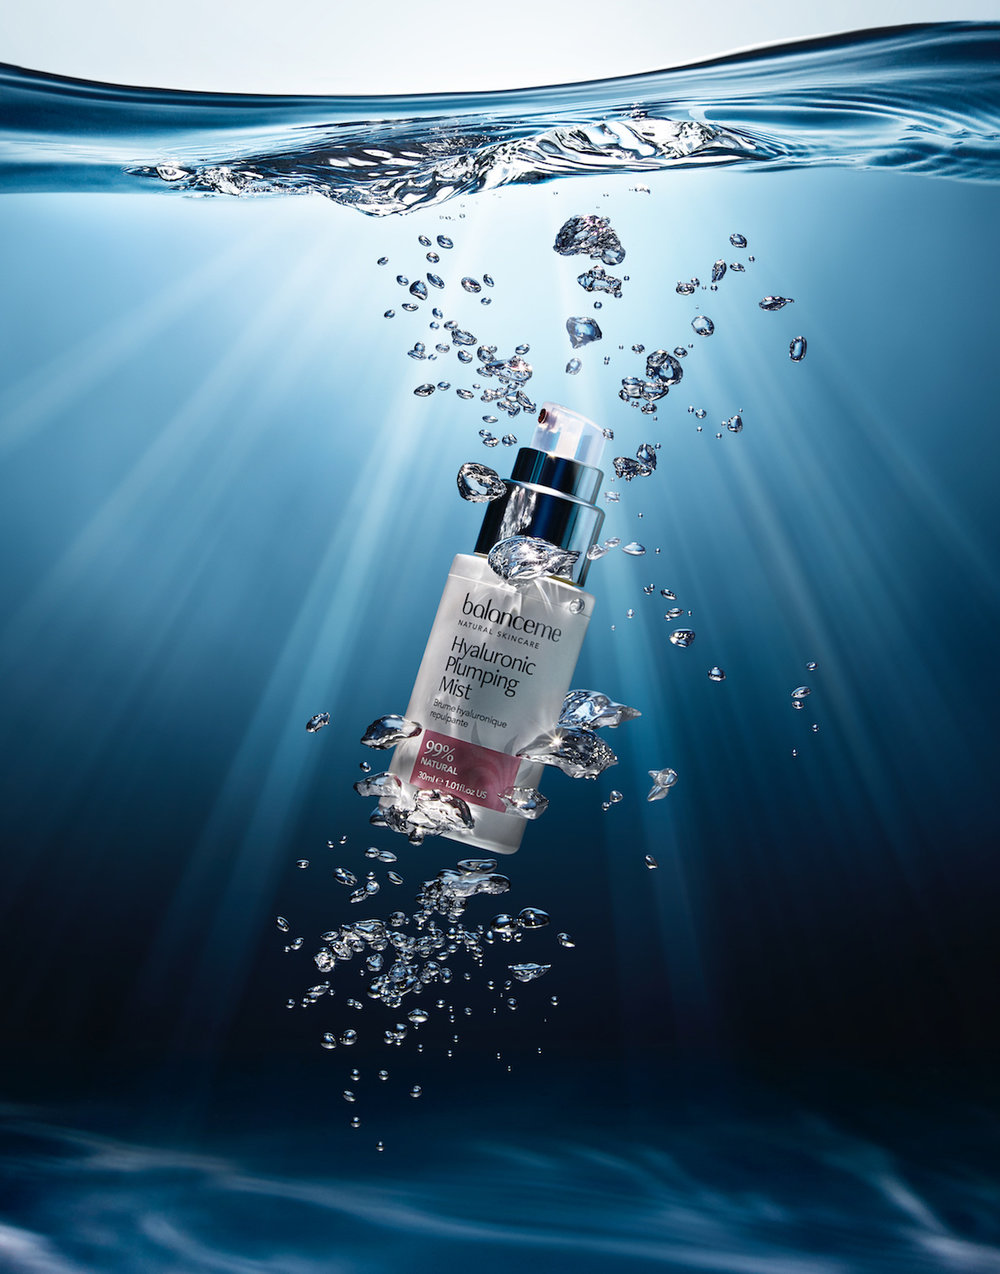 001_Still_Life_Product_Photographer_Dennis_Pedersen_Beauty_Cosmetic_Liquid_Advertising_Editorial_Creative_BALANCE_ME_WATER_DEEP_SPLASH_BUBBLE_LIGHT_RAY_RIPPLE.jpg